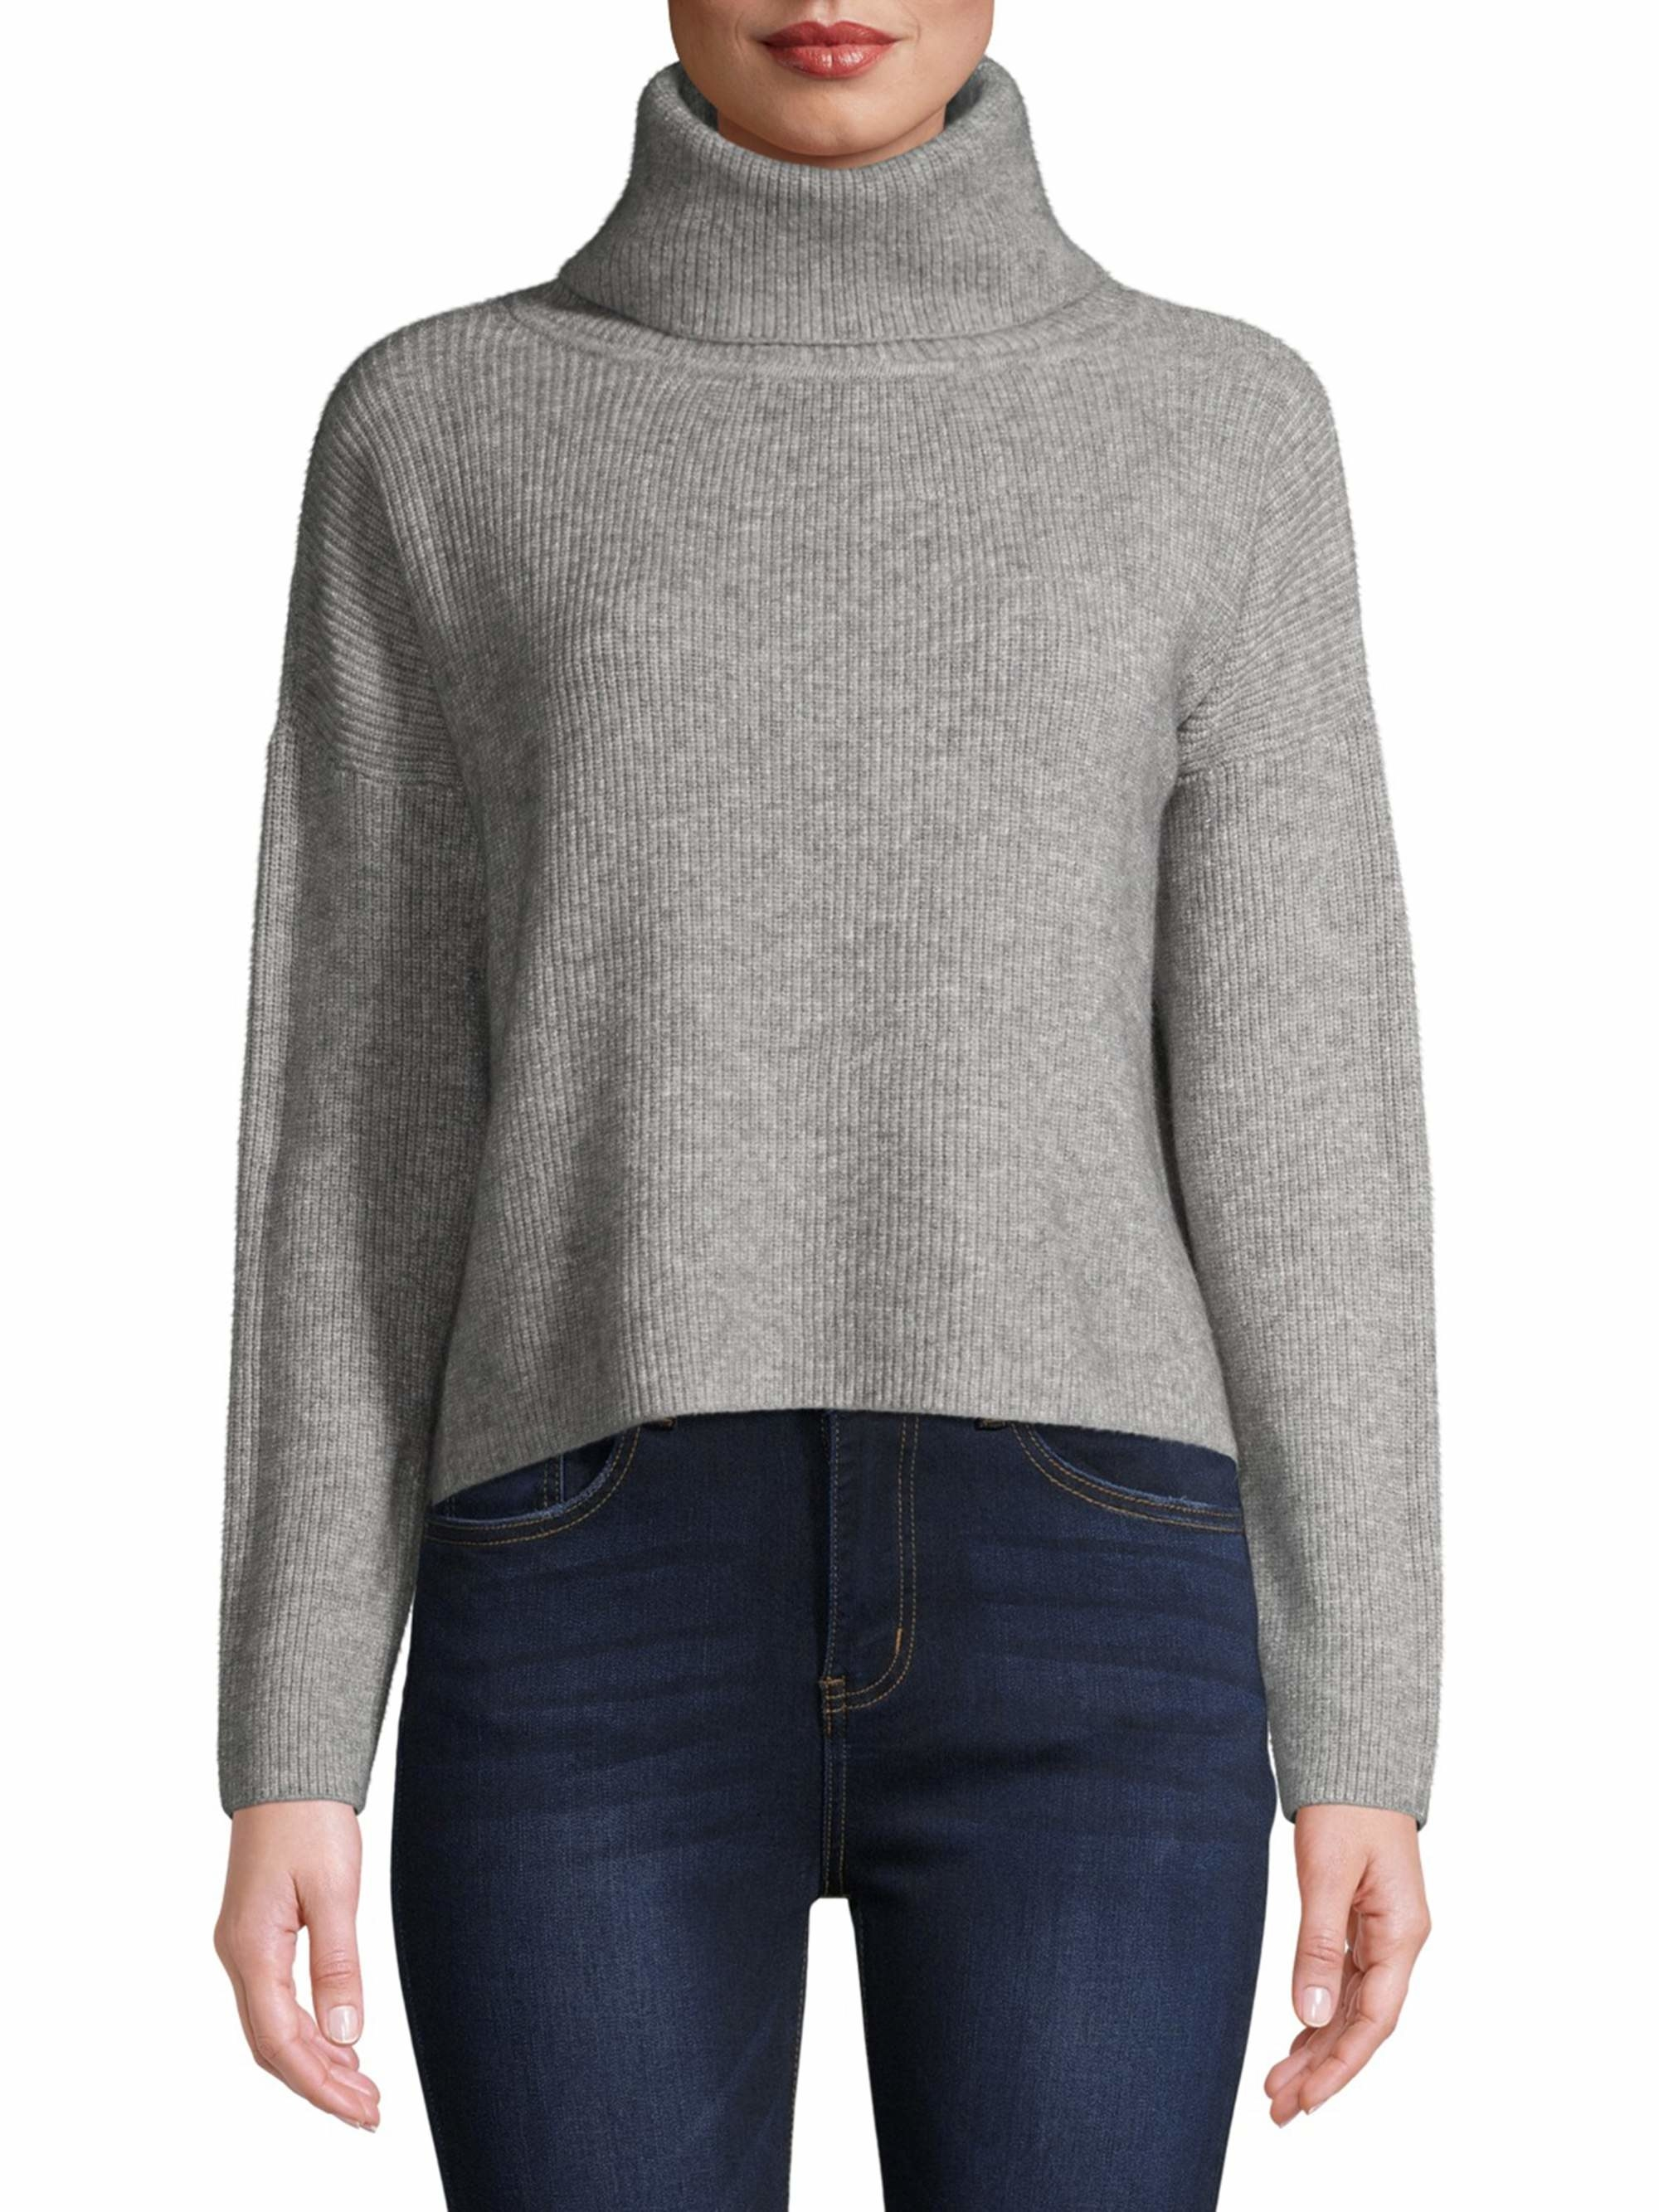 Model wearing grey cowl neck sweater and jeans